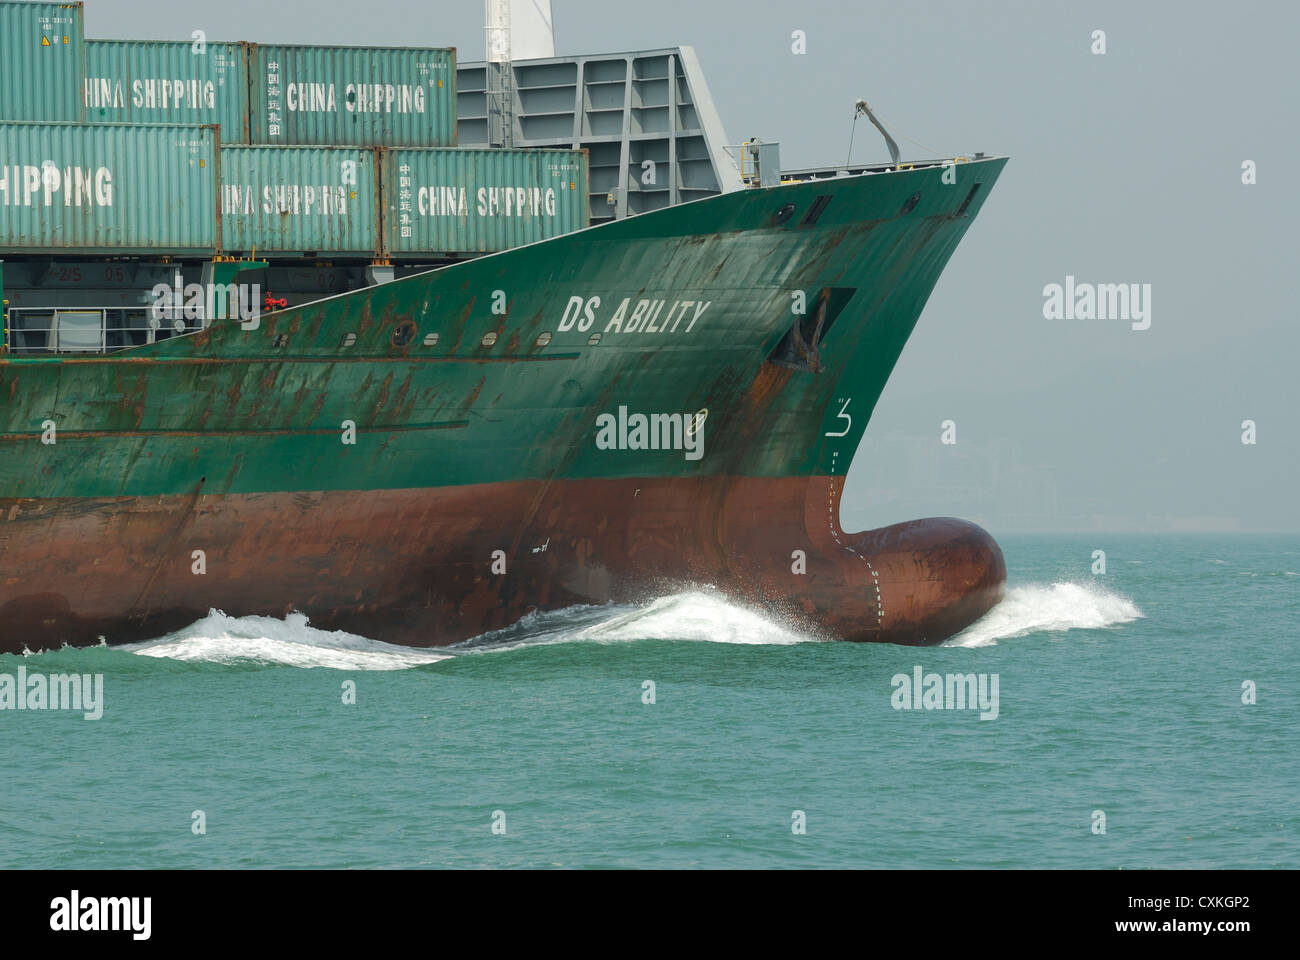 Bow of a freight moving through the waters of the South China Sea, Hong Kong, China. - Stock Image